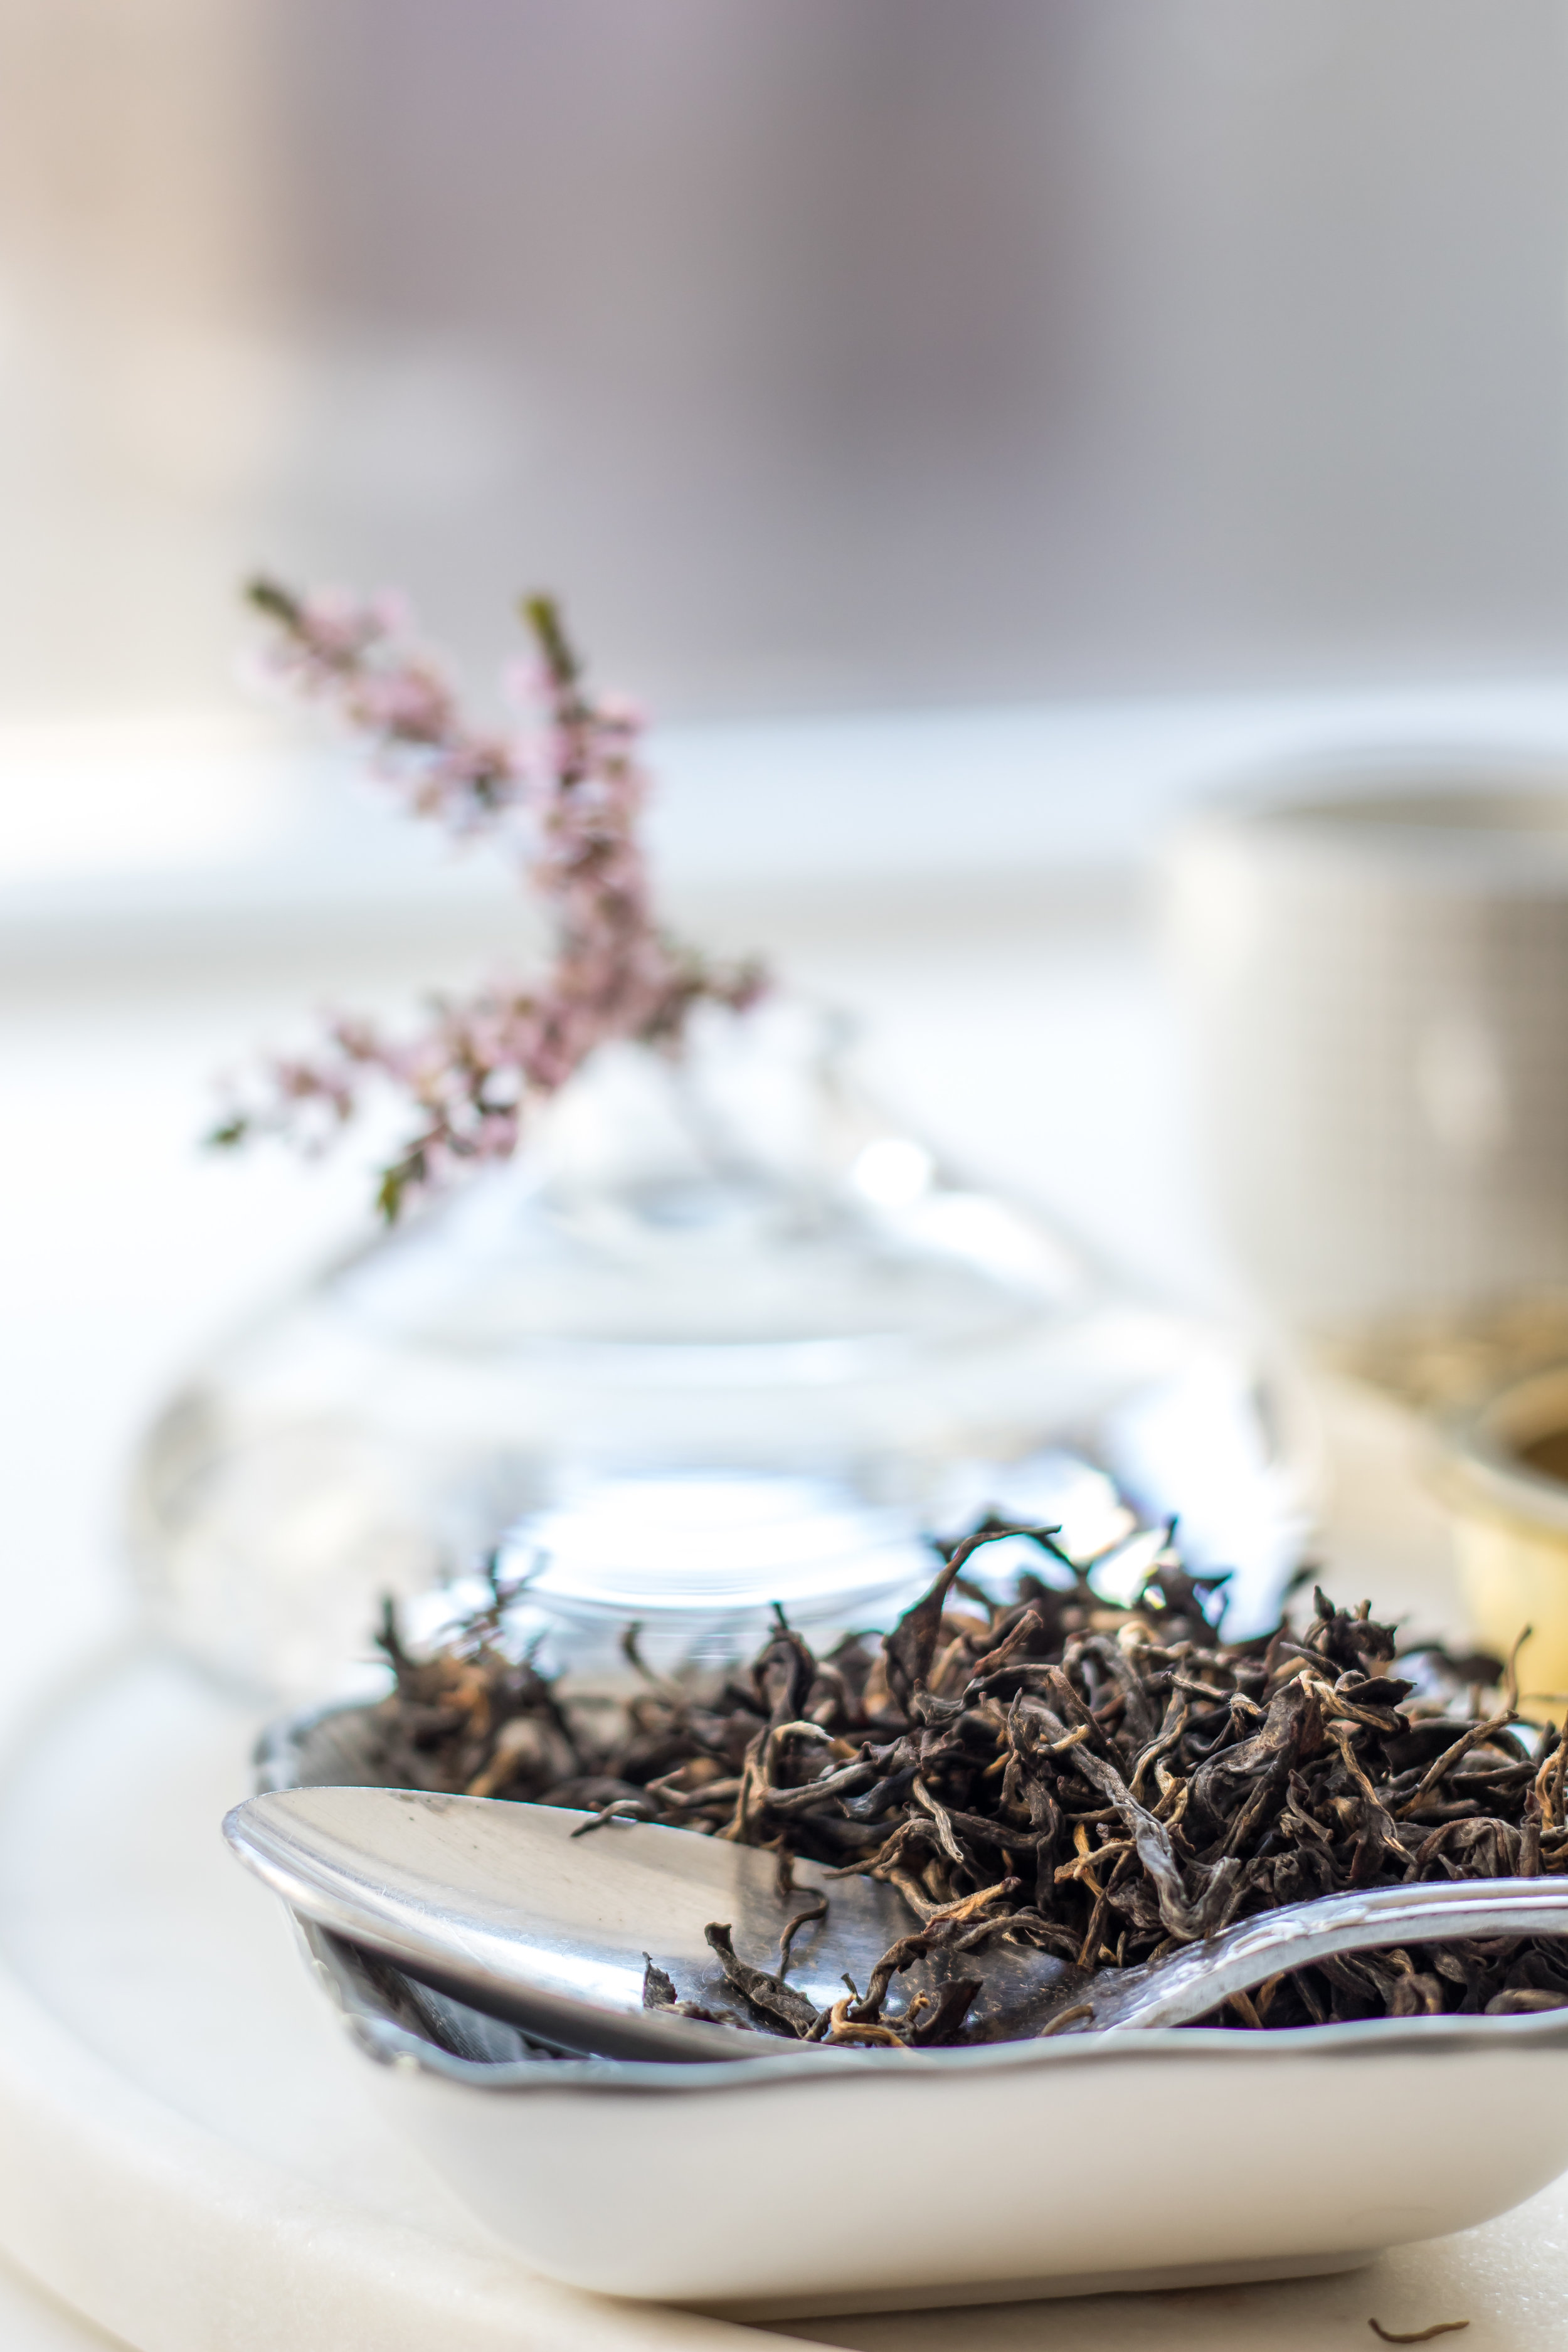 How sustainable is your tea time?